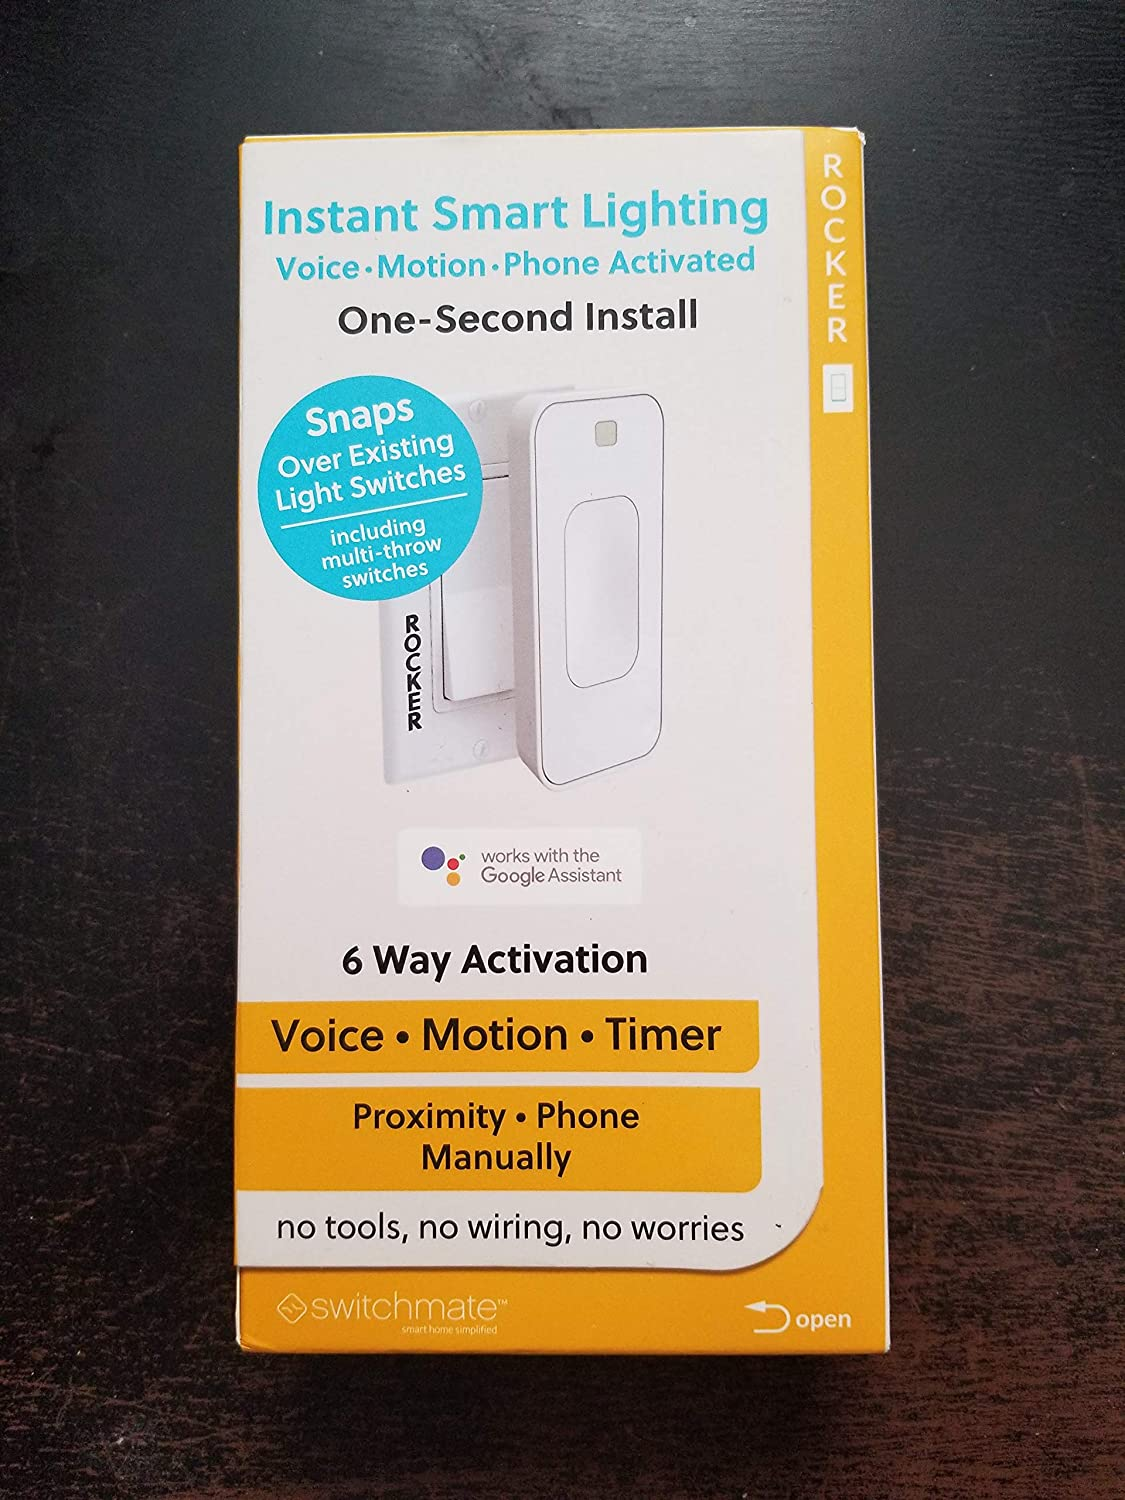 Switchmate RSM003W Motion Activated Instant Smart Light Switch Rocker That Listens 3.0 (White) + 1 Year Extended Warranty